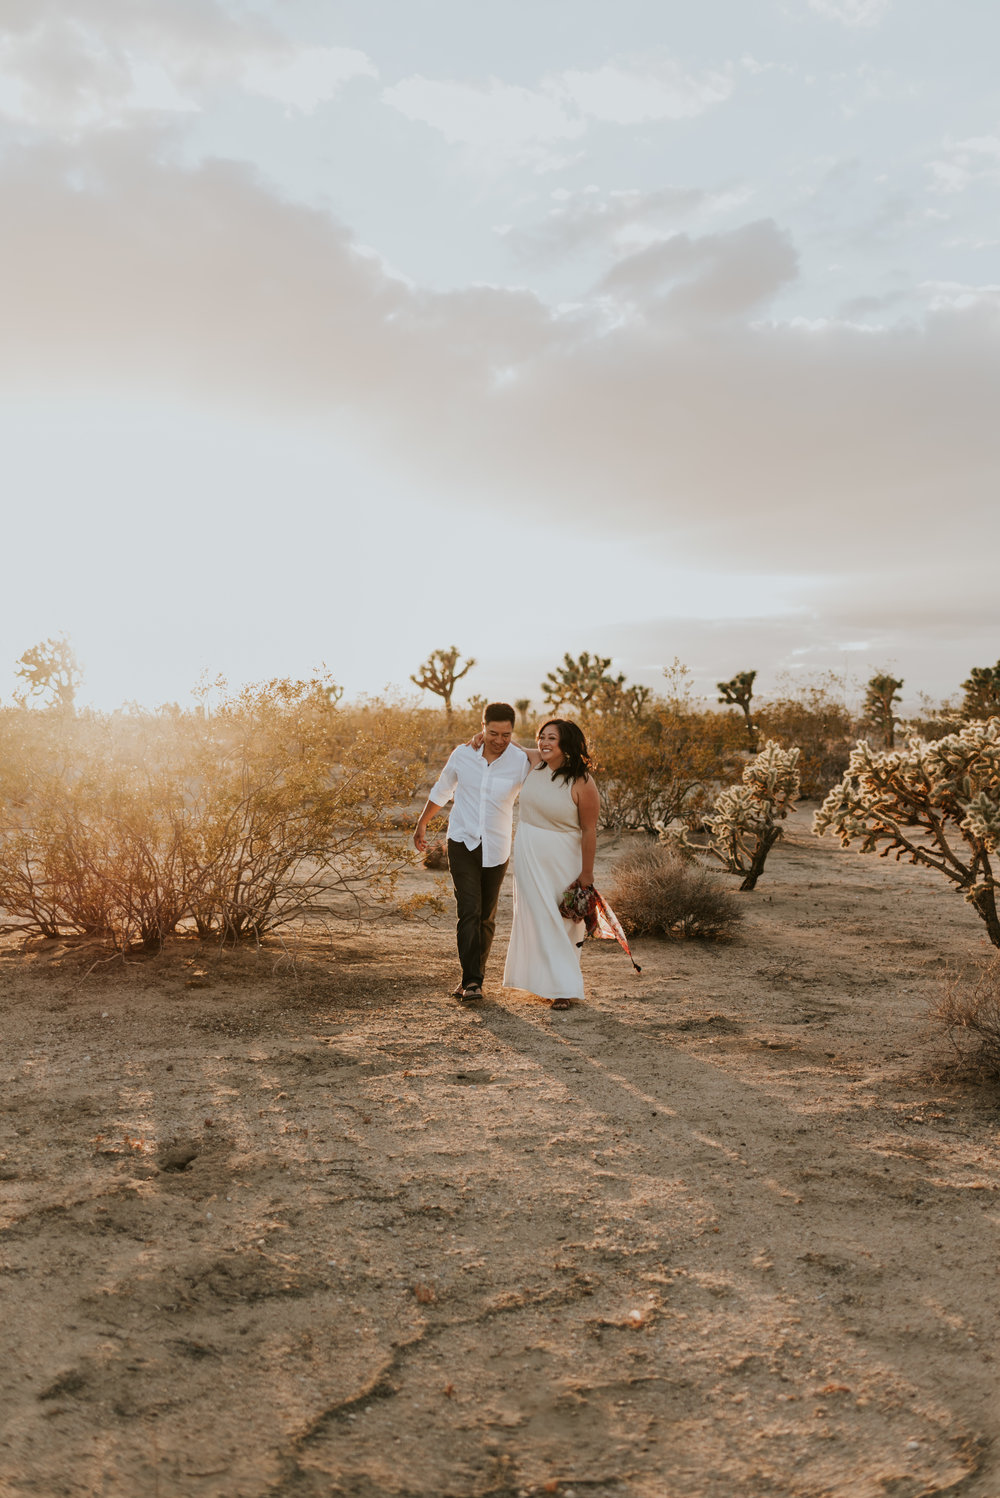 joshuatreeairstreamcouplessessioncarrierogersphotography-126.jpg